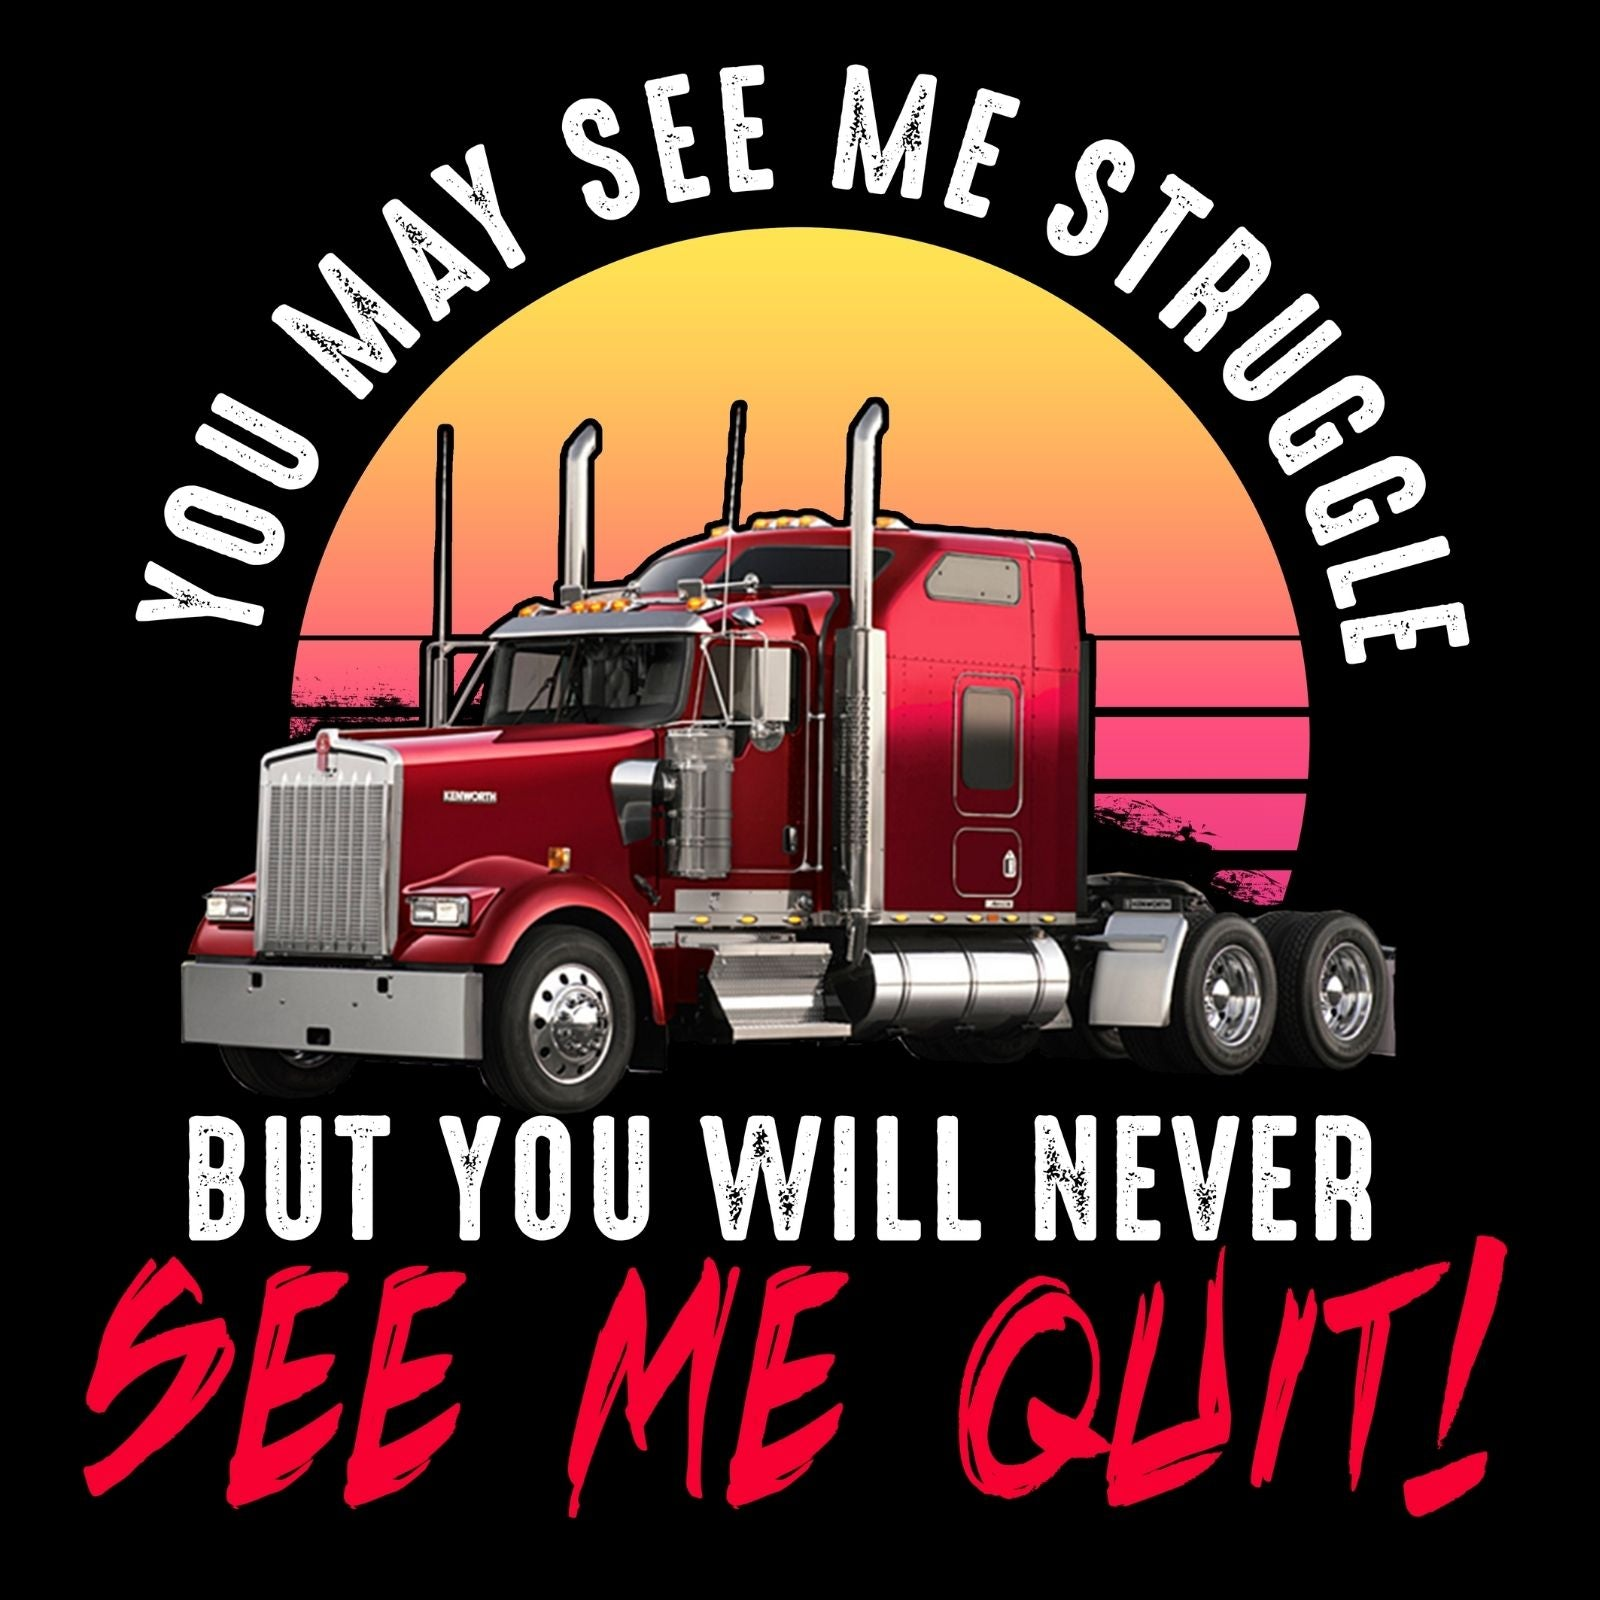 You May See Me Struggle But You Will Never See Me Quit - Bastard Graphics